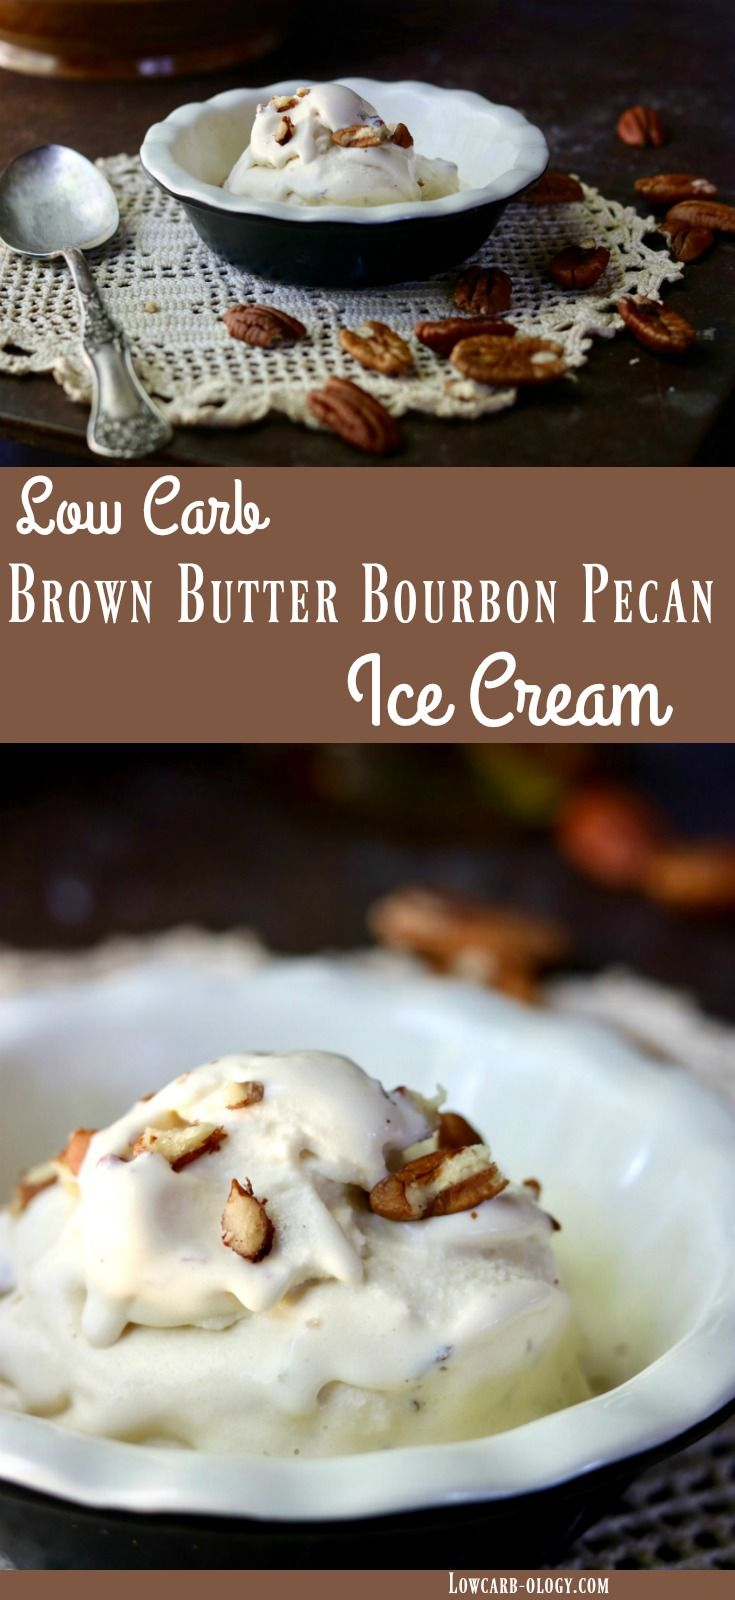 Low carb ice cream is sugar-free goodness anytime of the year but this Brown Butter Bourbon Pecan ice cream recipe has all the flavors of fall. Creamy and decadently satisfying, it's a low carb treat that is a delicious way to end any meal. It's super easy to make, too! From lowcarb-ology.com